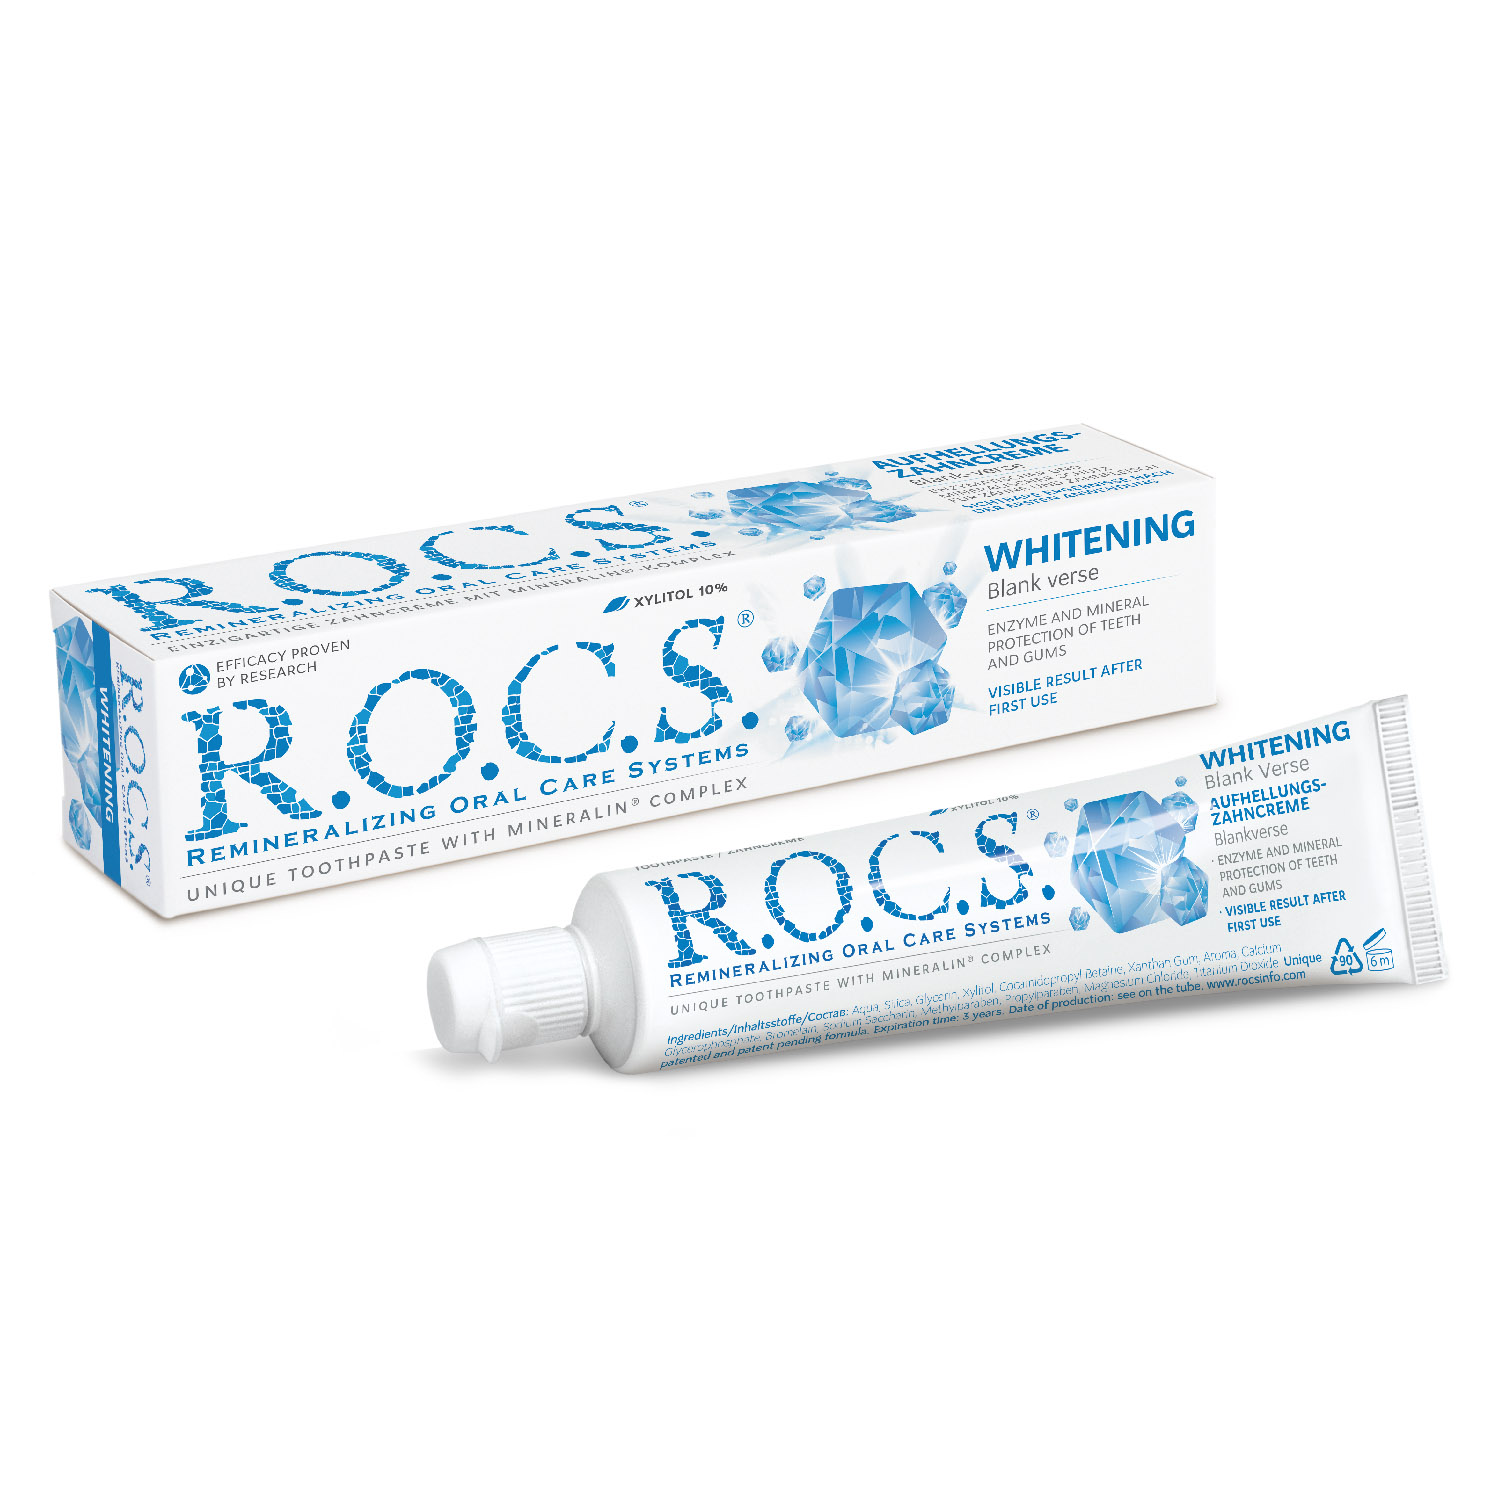 Whitening. Tube mit 74g (60ml)